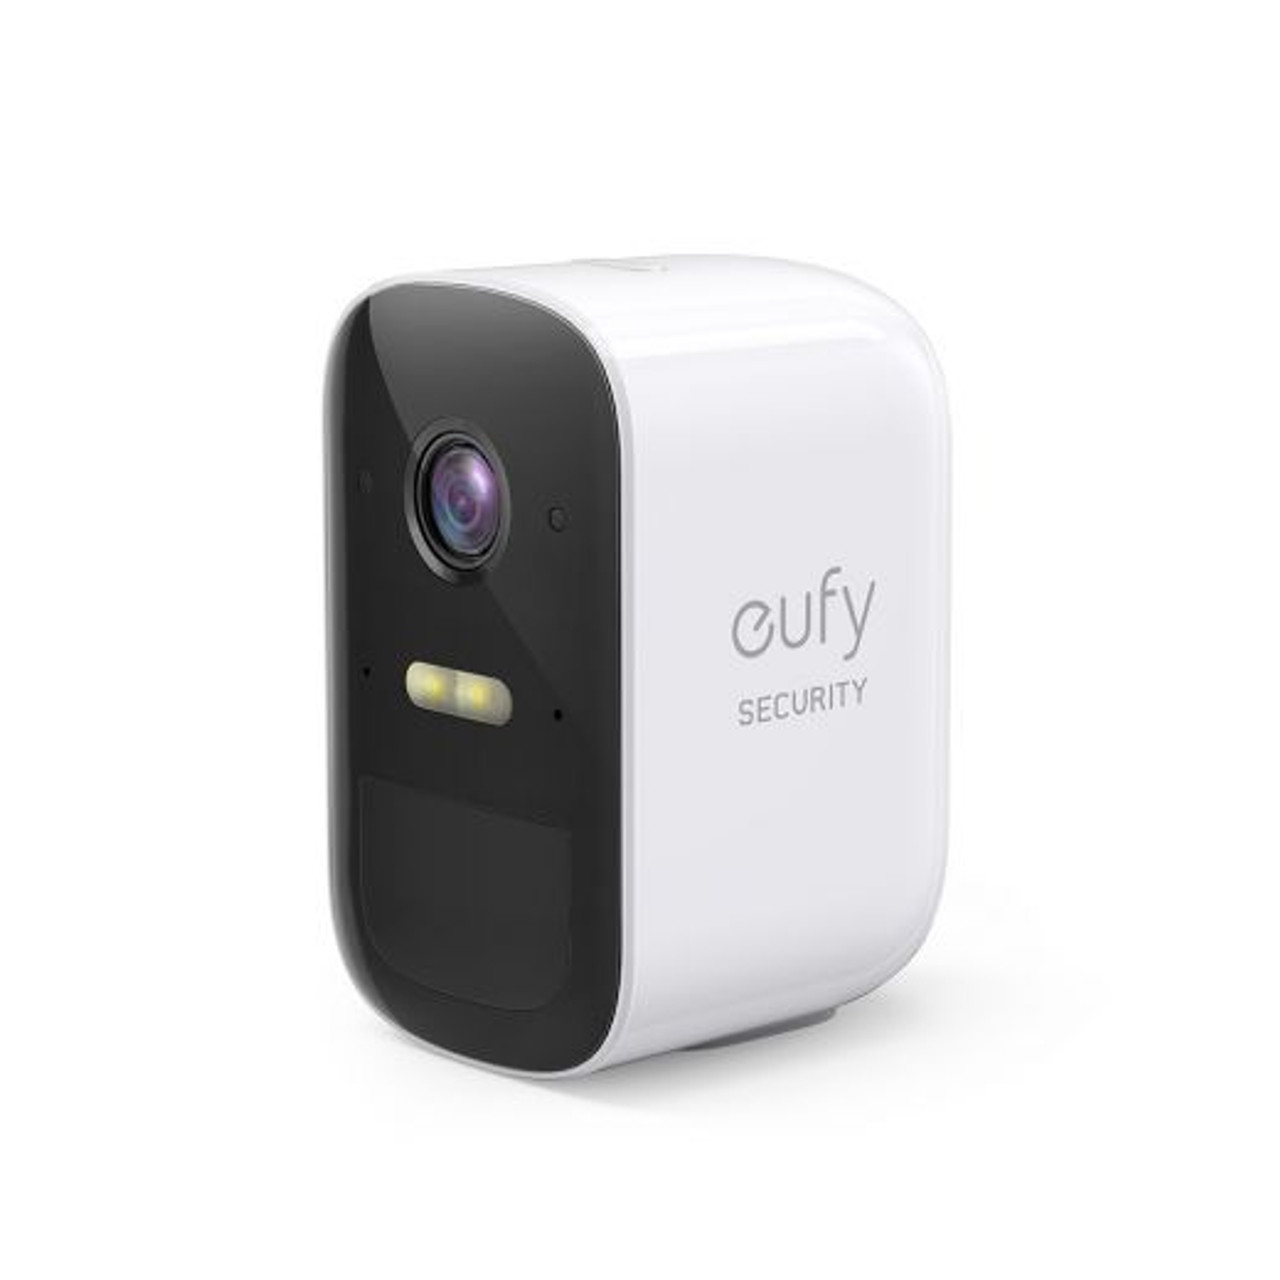 Eufy T8862CD2 Cam 2C Wire Free Full-HD Security 3-Camera Set with Homebase